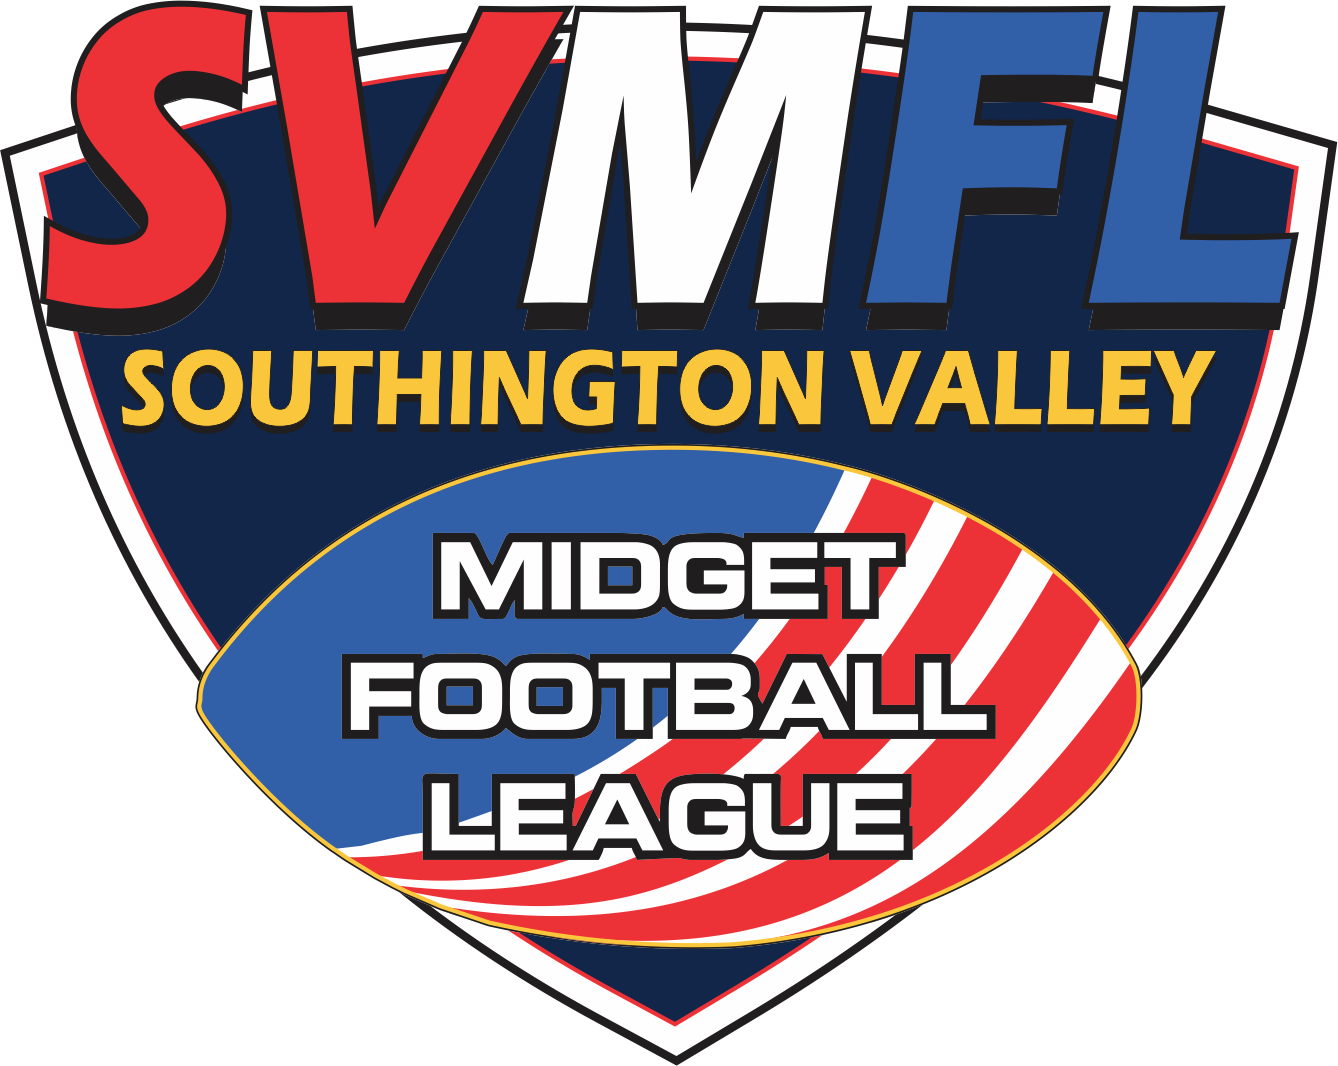 Southington Valley Midget Football League, Football, Goal, Field